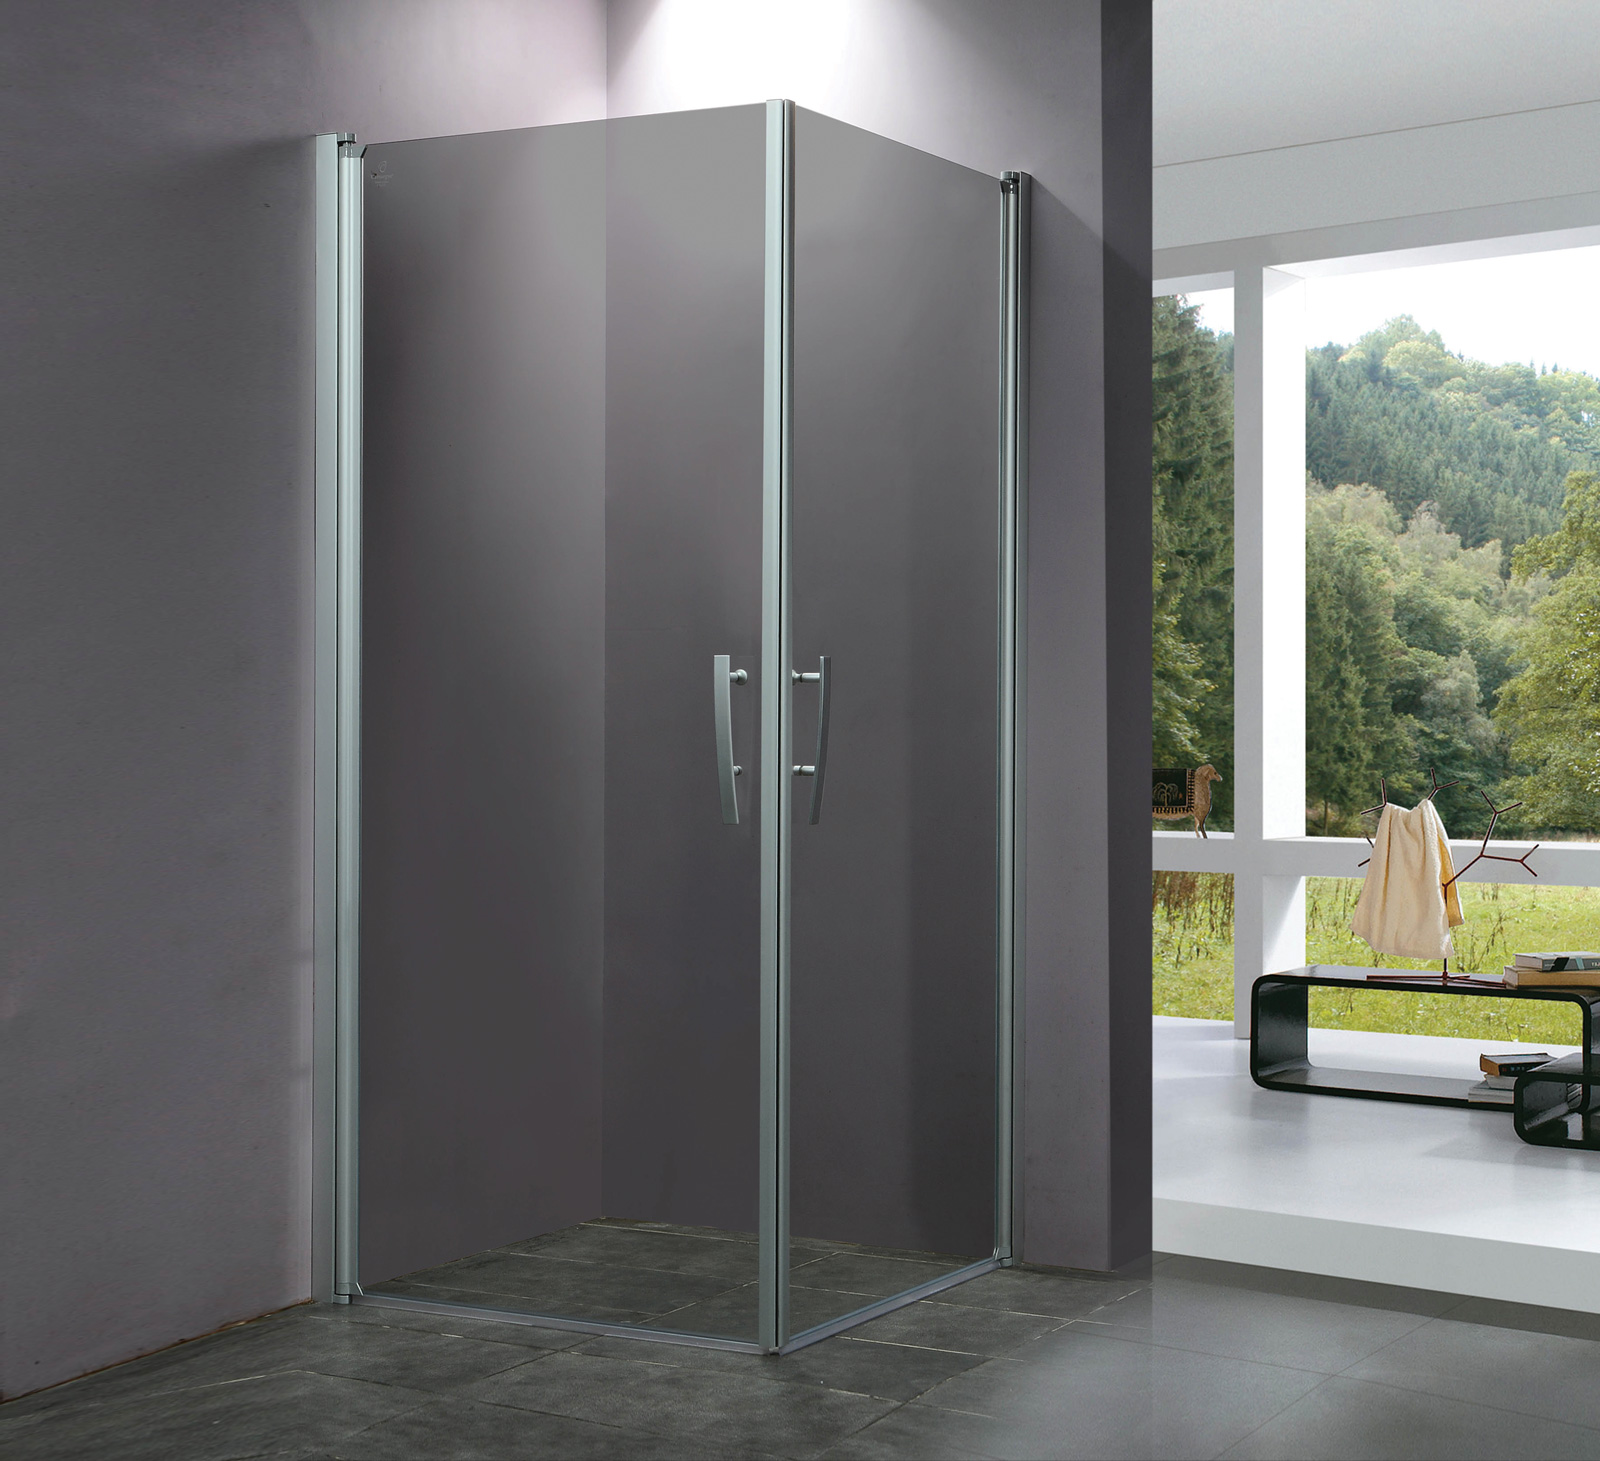 Luxury Shower Cabinet Designer Shower Door Premium